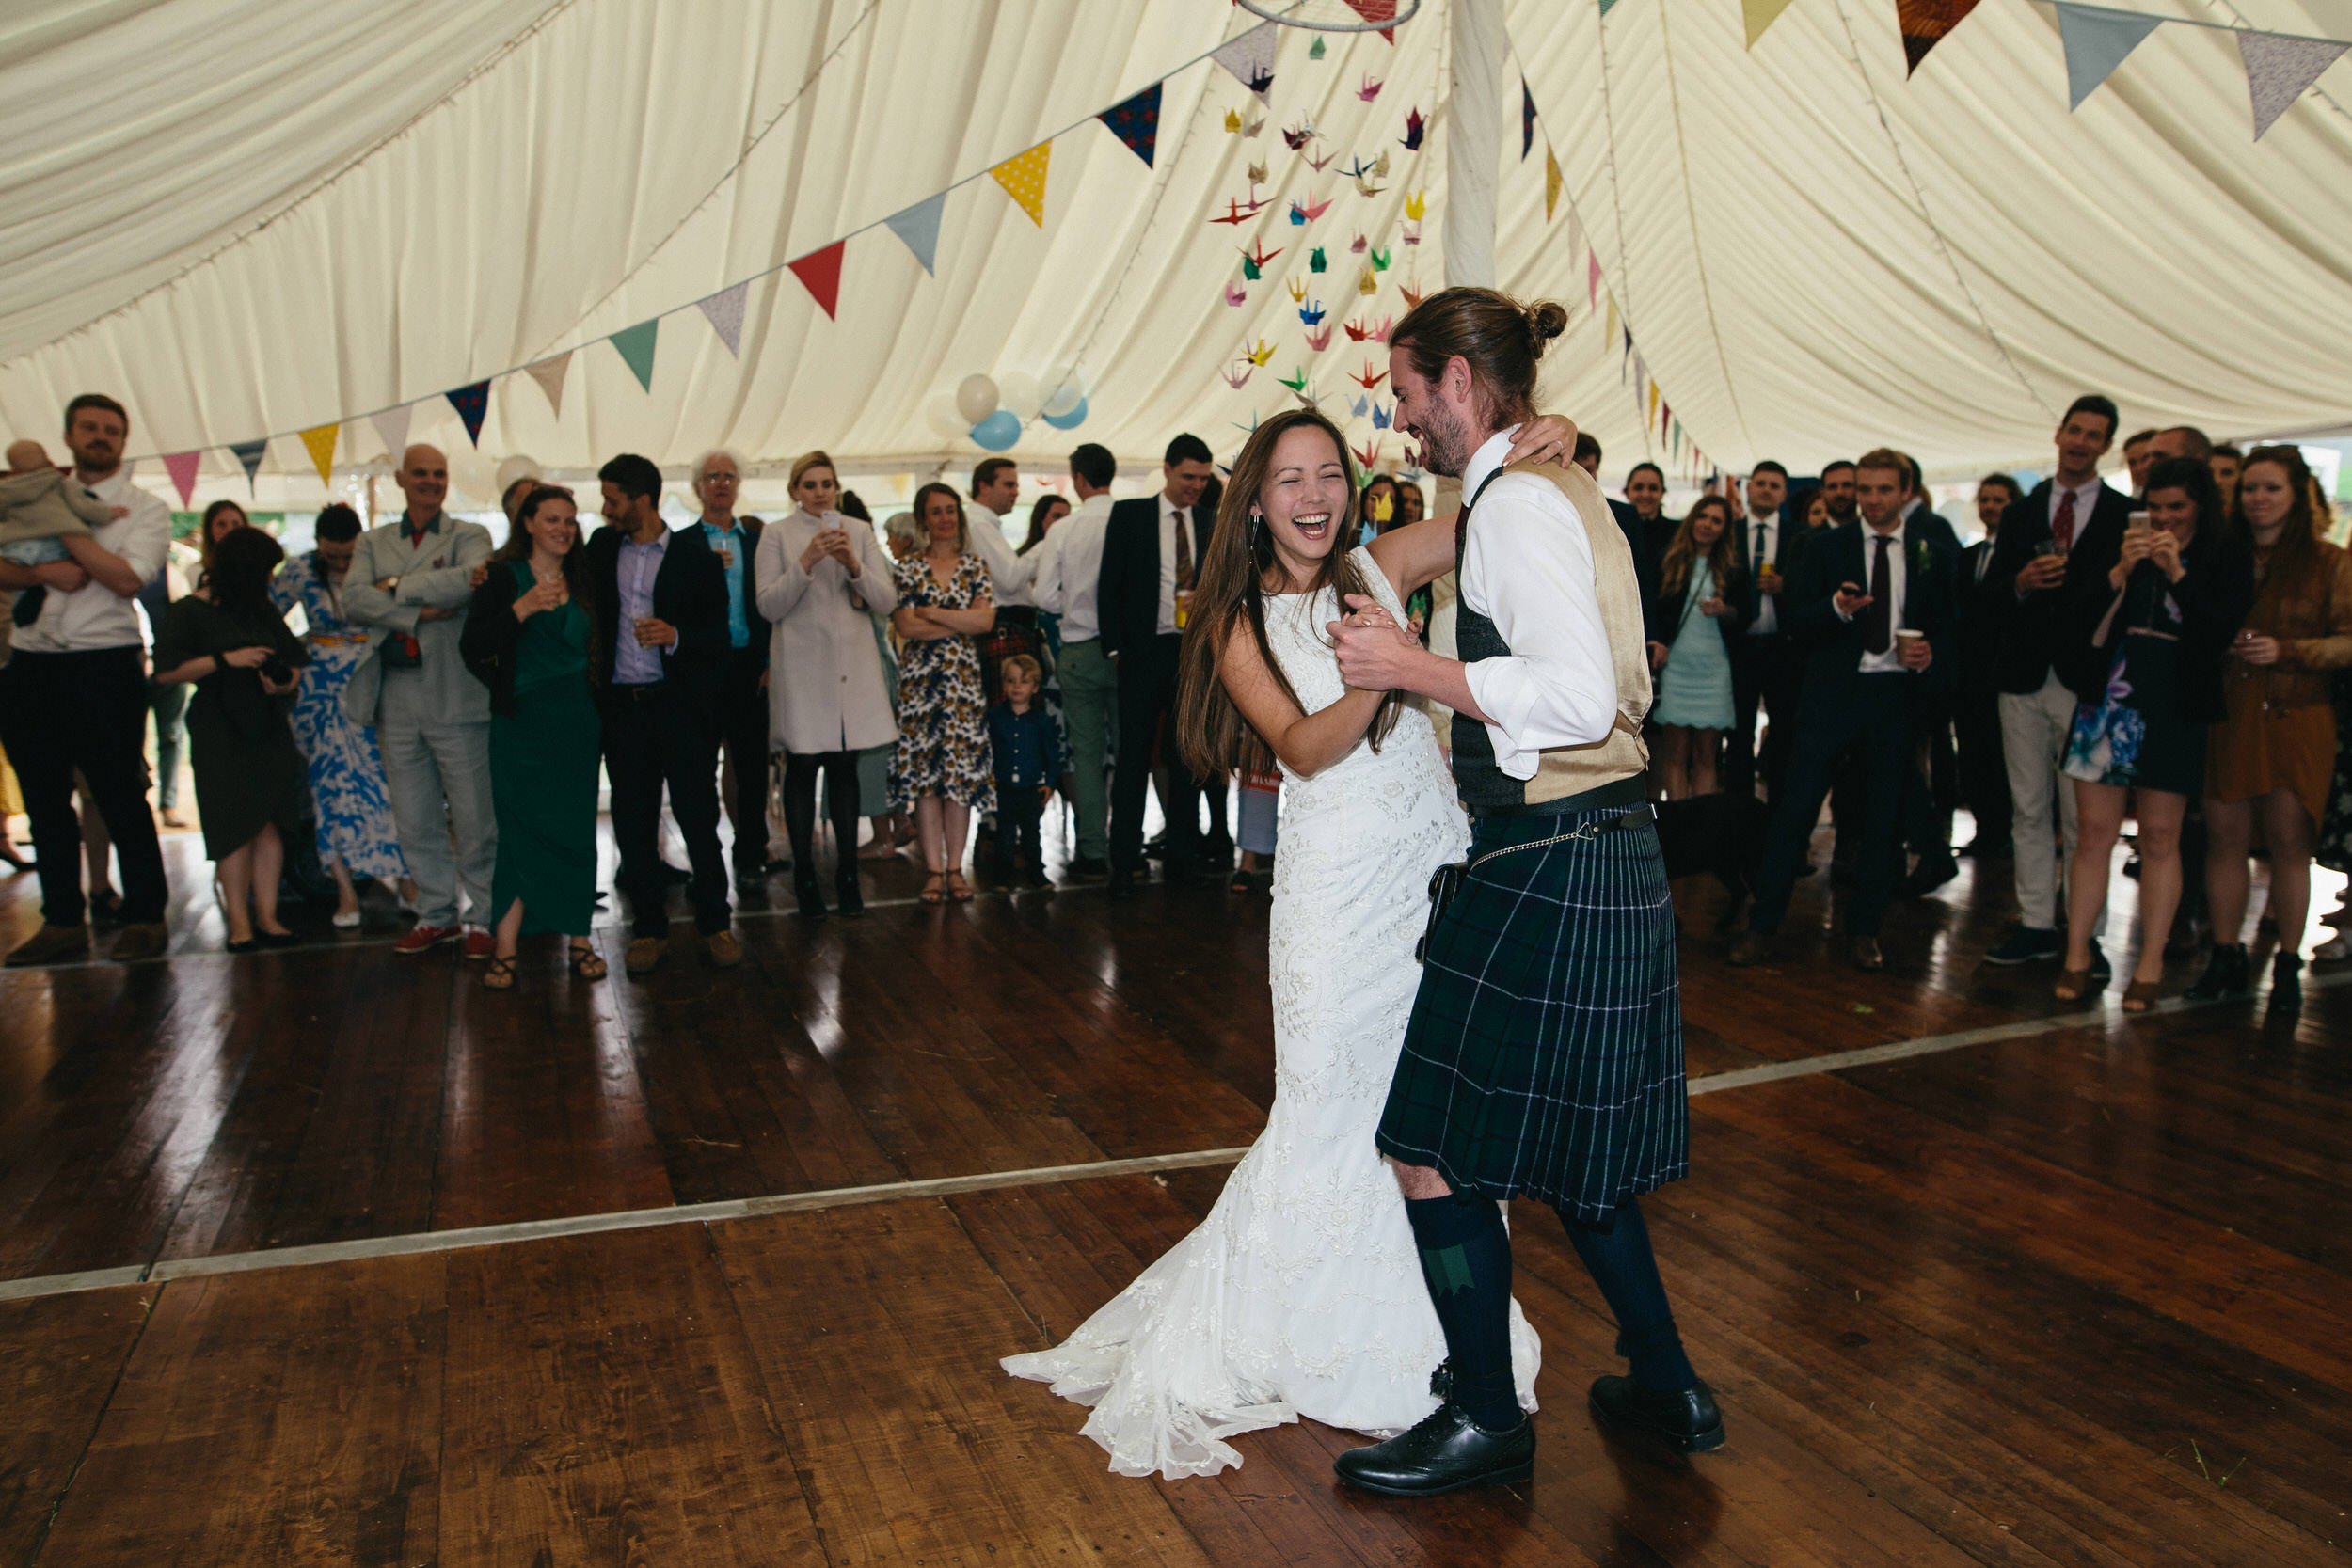 Alternative Quirky Wedding Photographer Scotland Borders Edinburgh 150.jpg